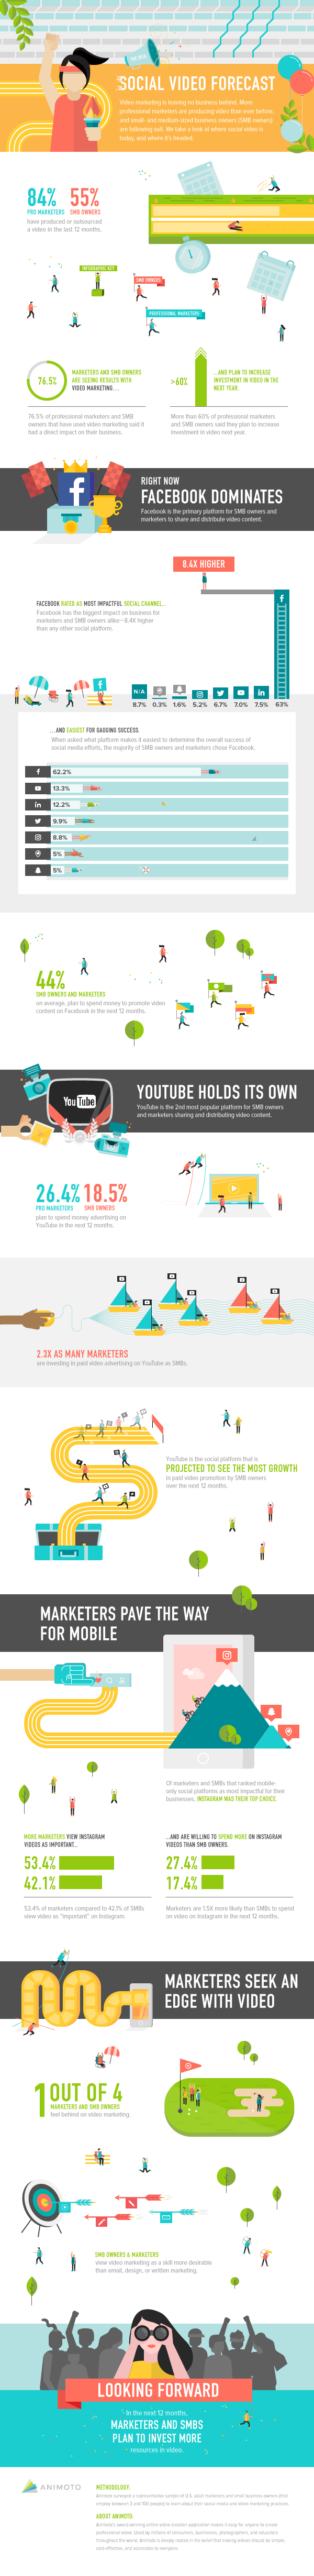 Social Video Infographic